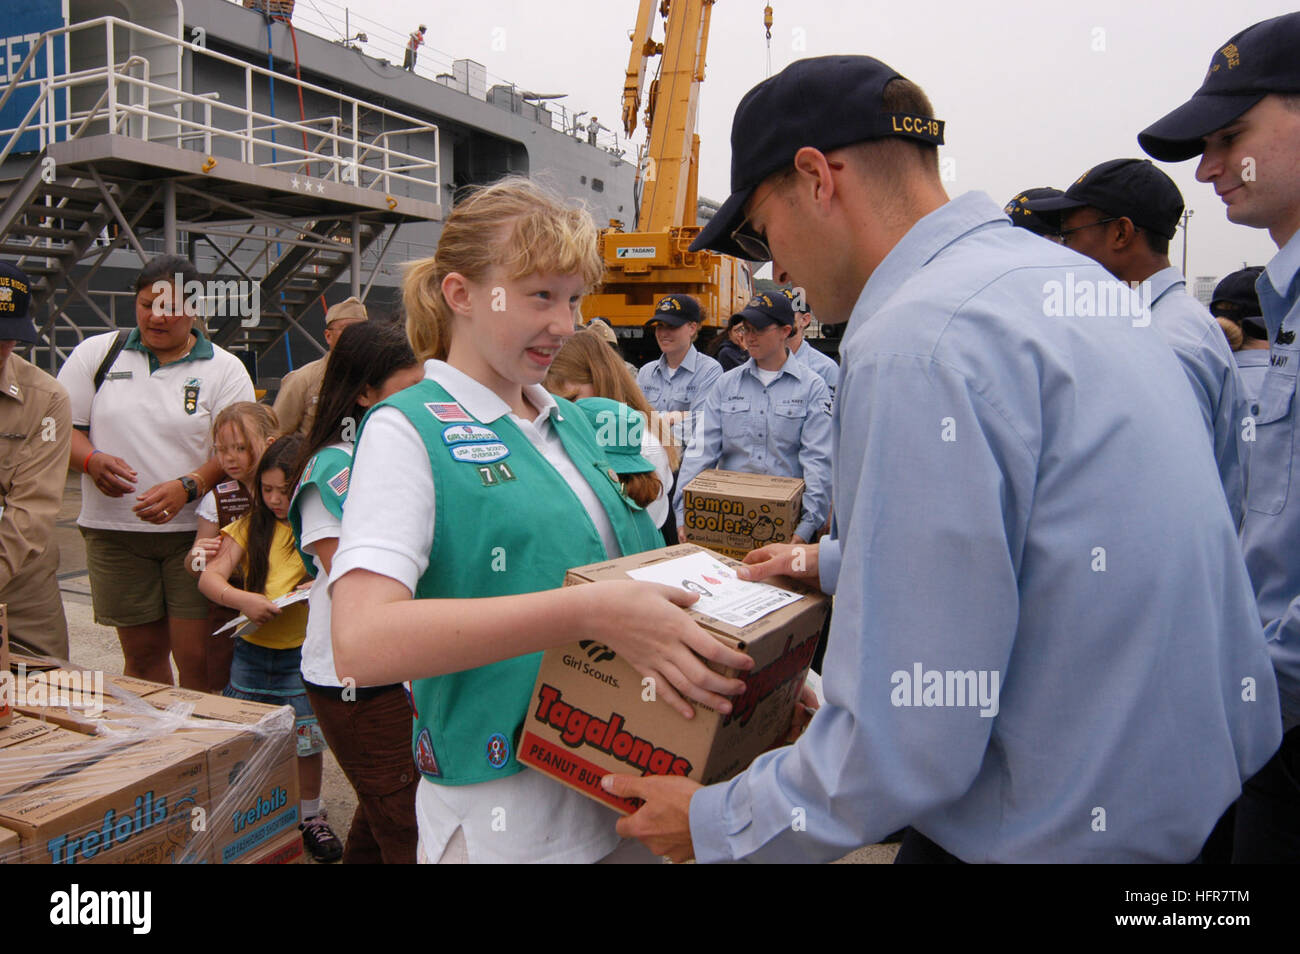 060615-N-5334H-097 Yokosuka, Japan (June 15, 2006) Ð A member of Girl Scout Junior Troop 71 personally delivers - Stock Image